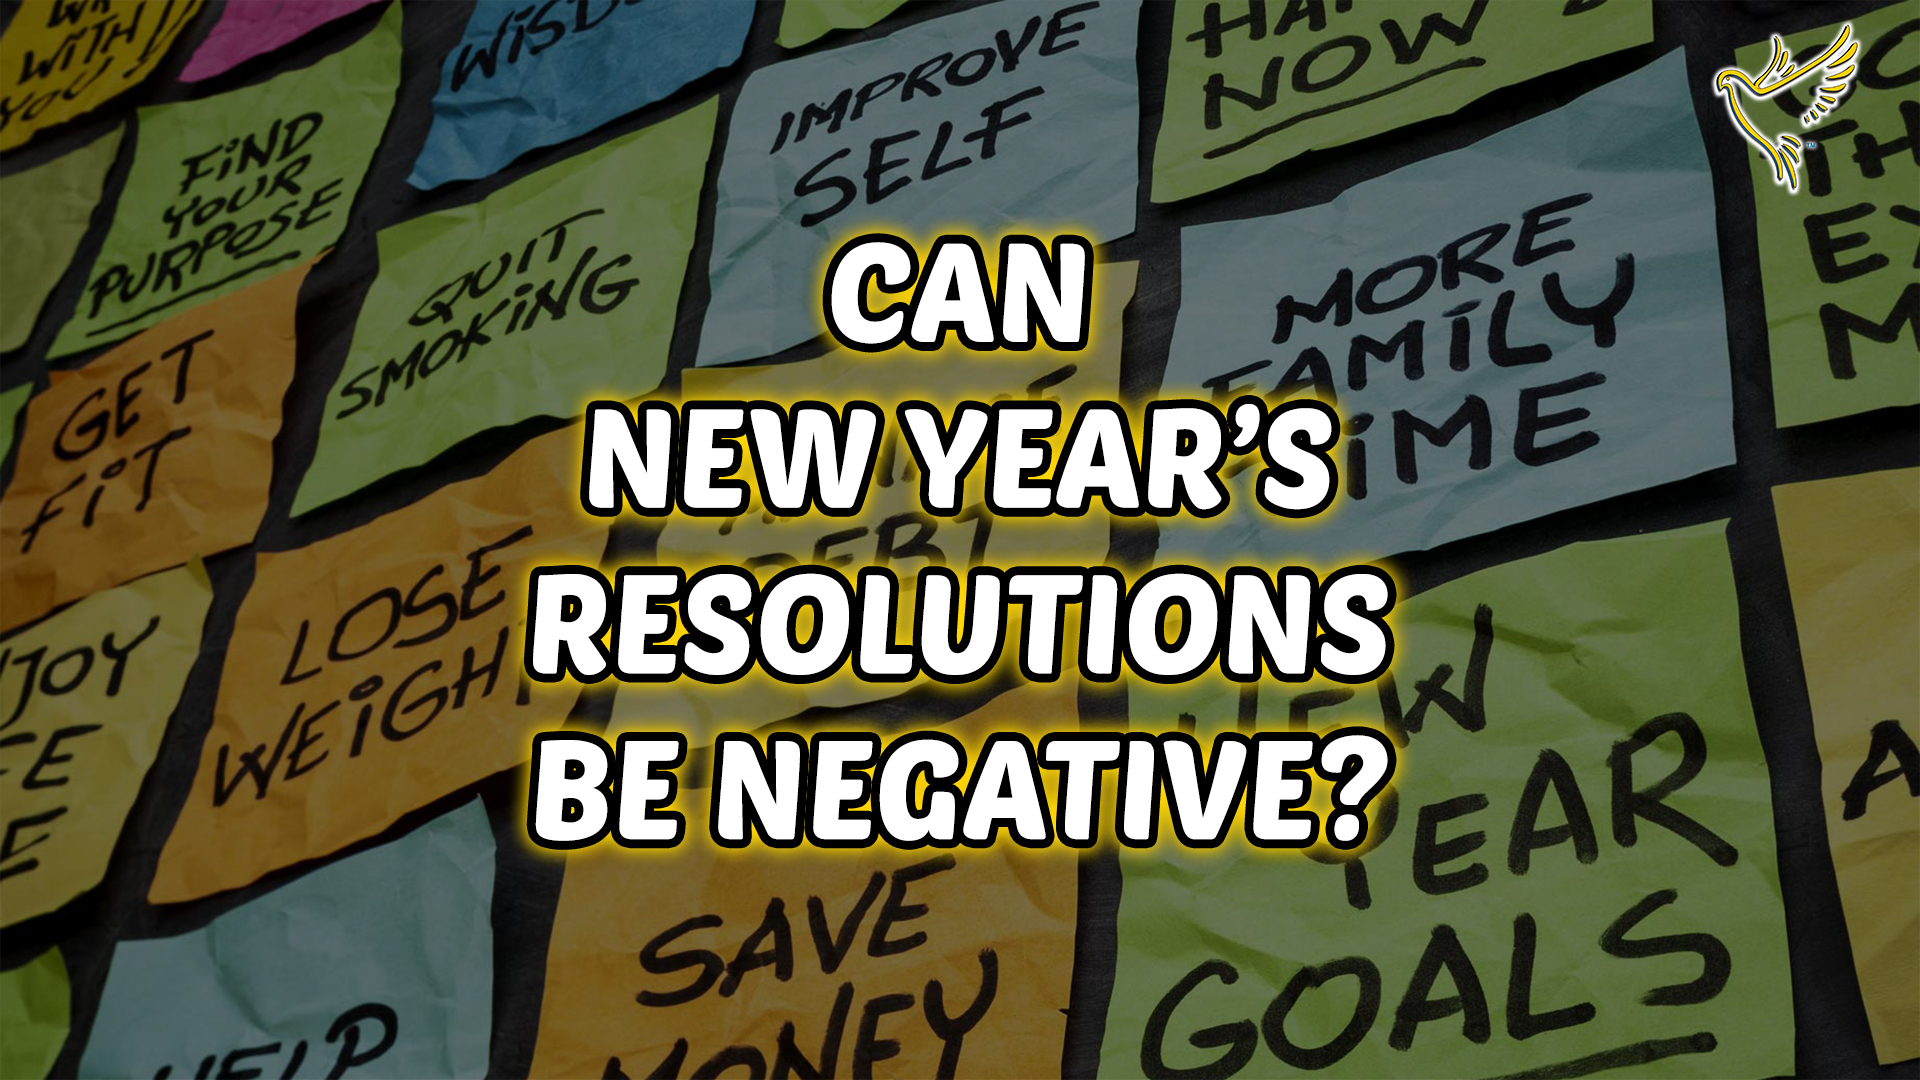 WADE'S WORLD Discuss The Pros & Cons Of NEW YEAR'S RESOLUTIONS! (Video)